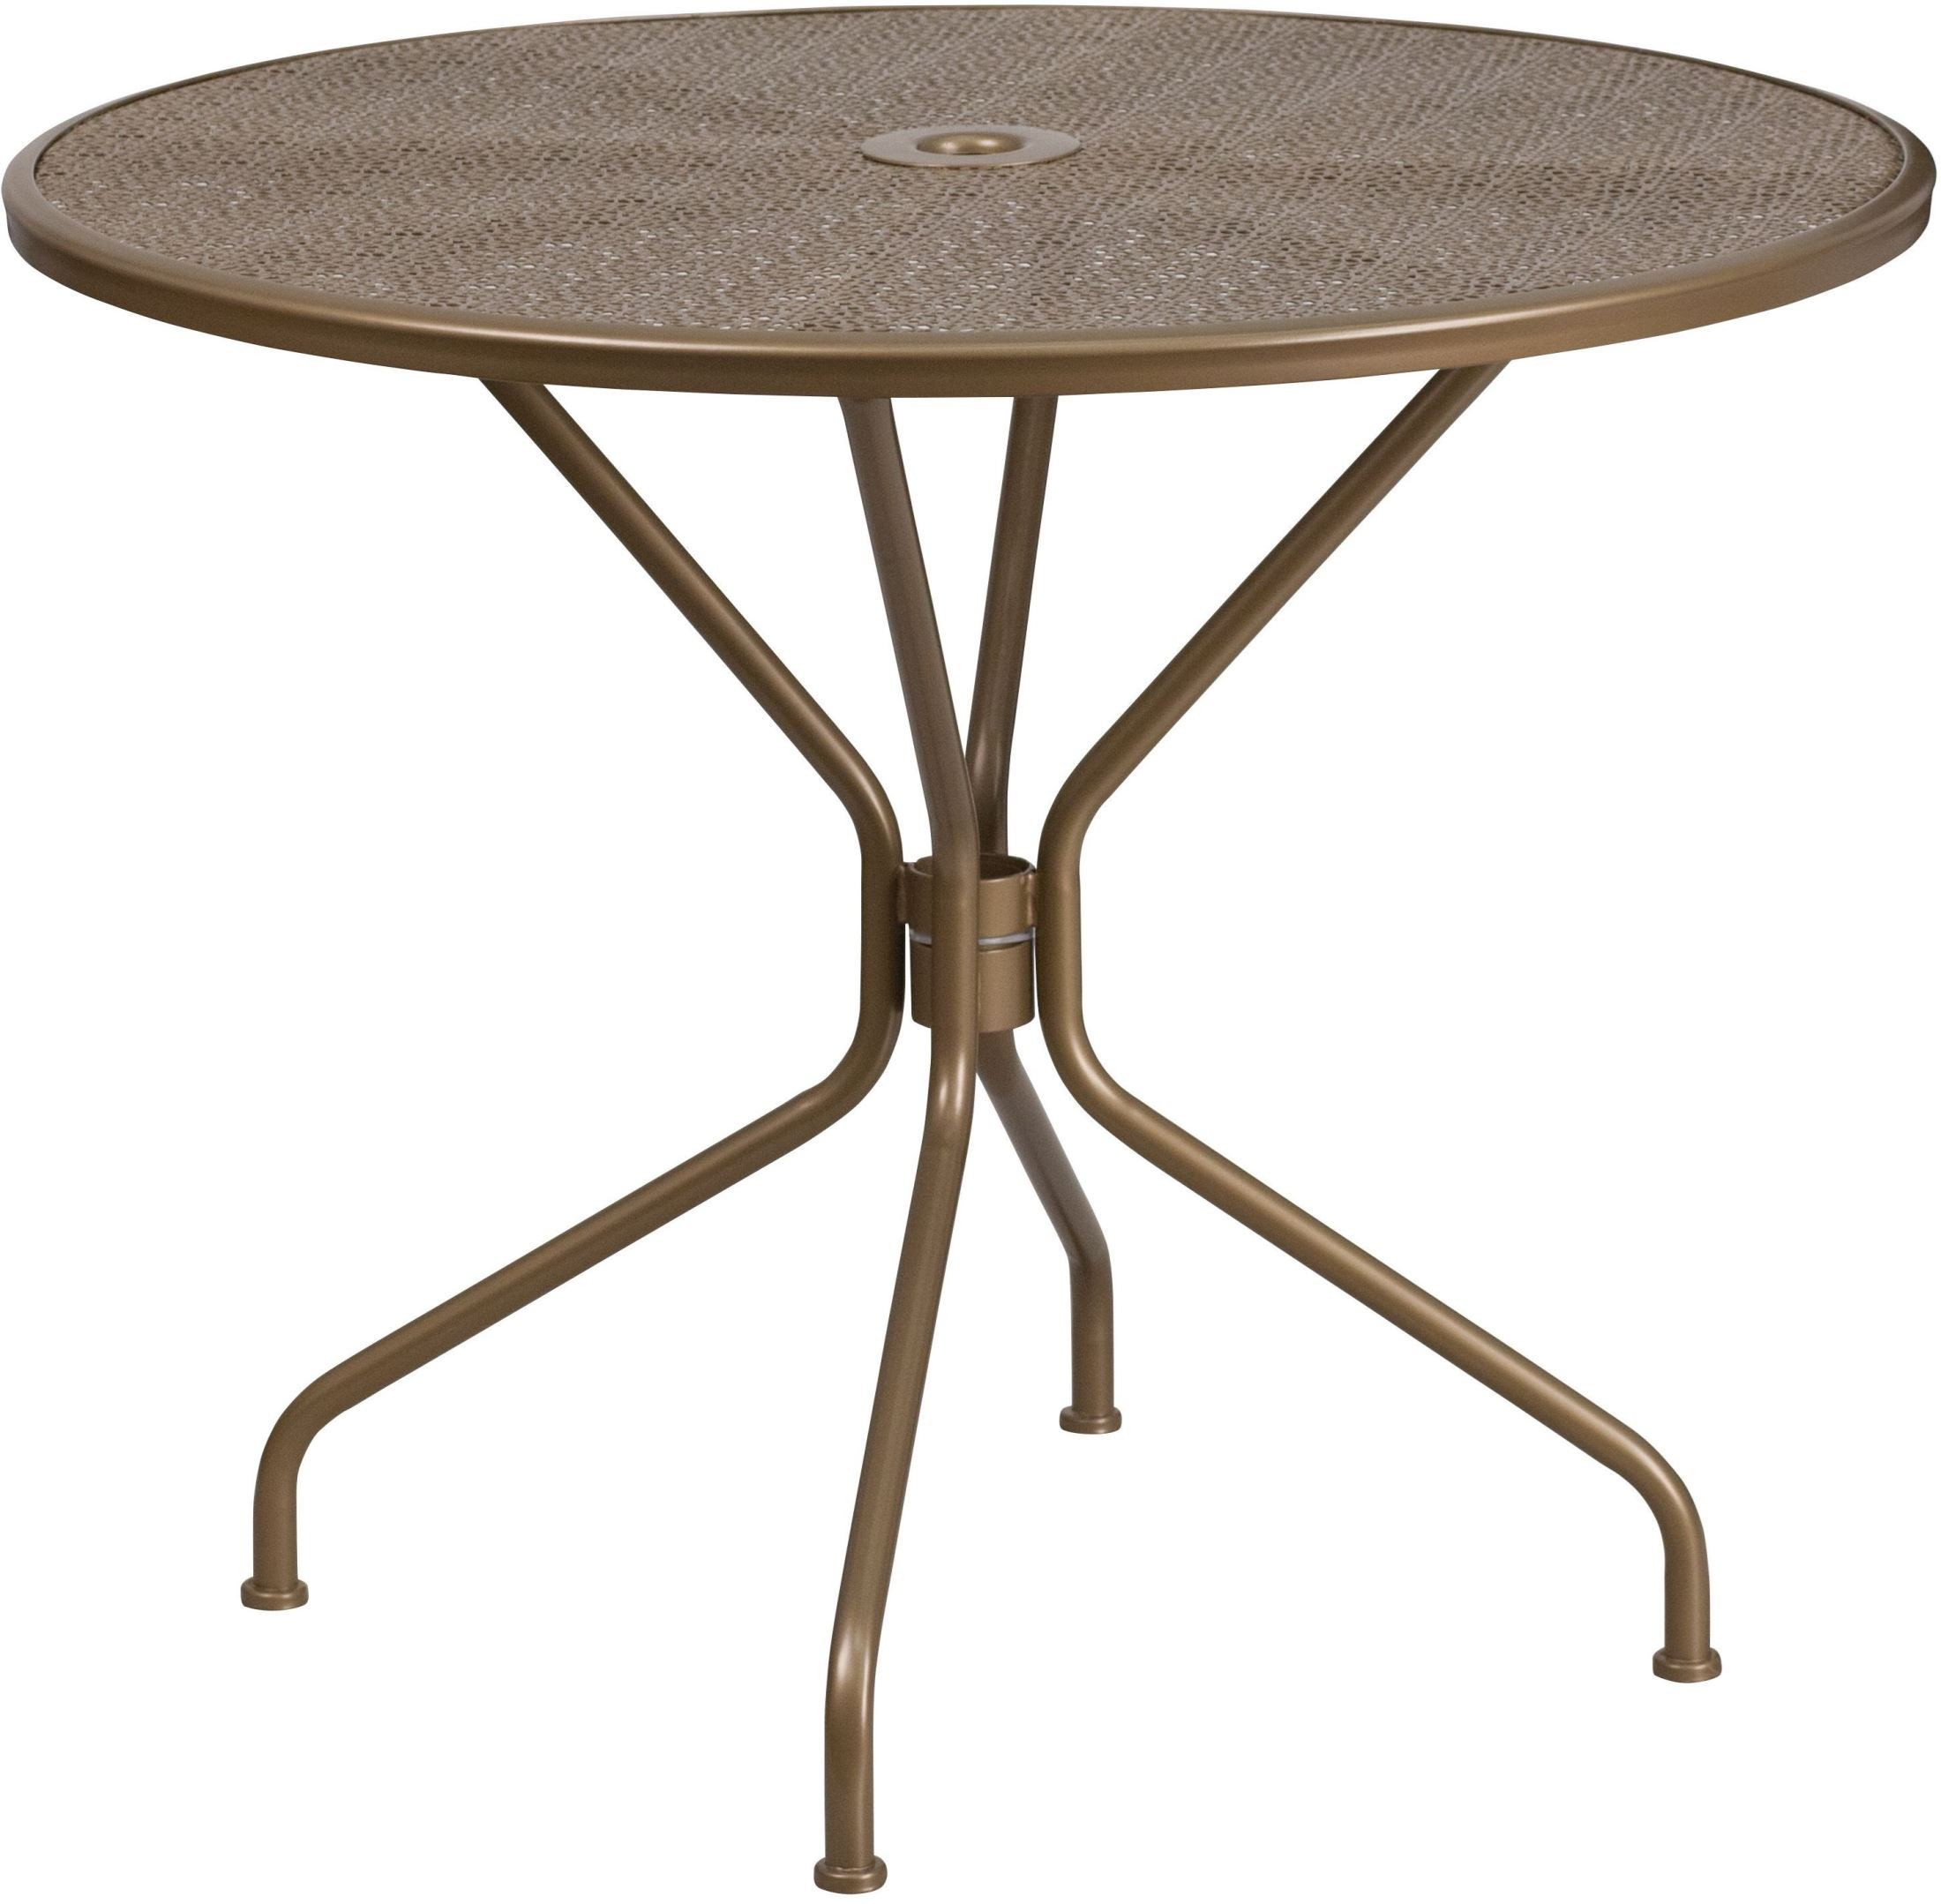 Round gold indoor outdoor steel patio table from for Outdoor round table tops for sale